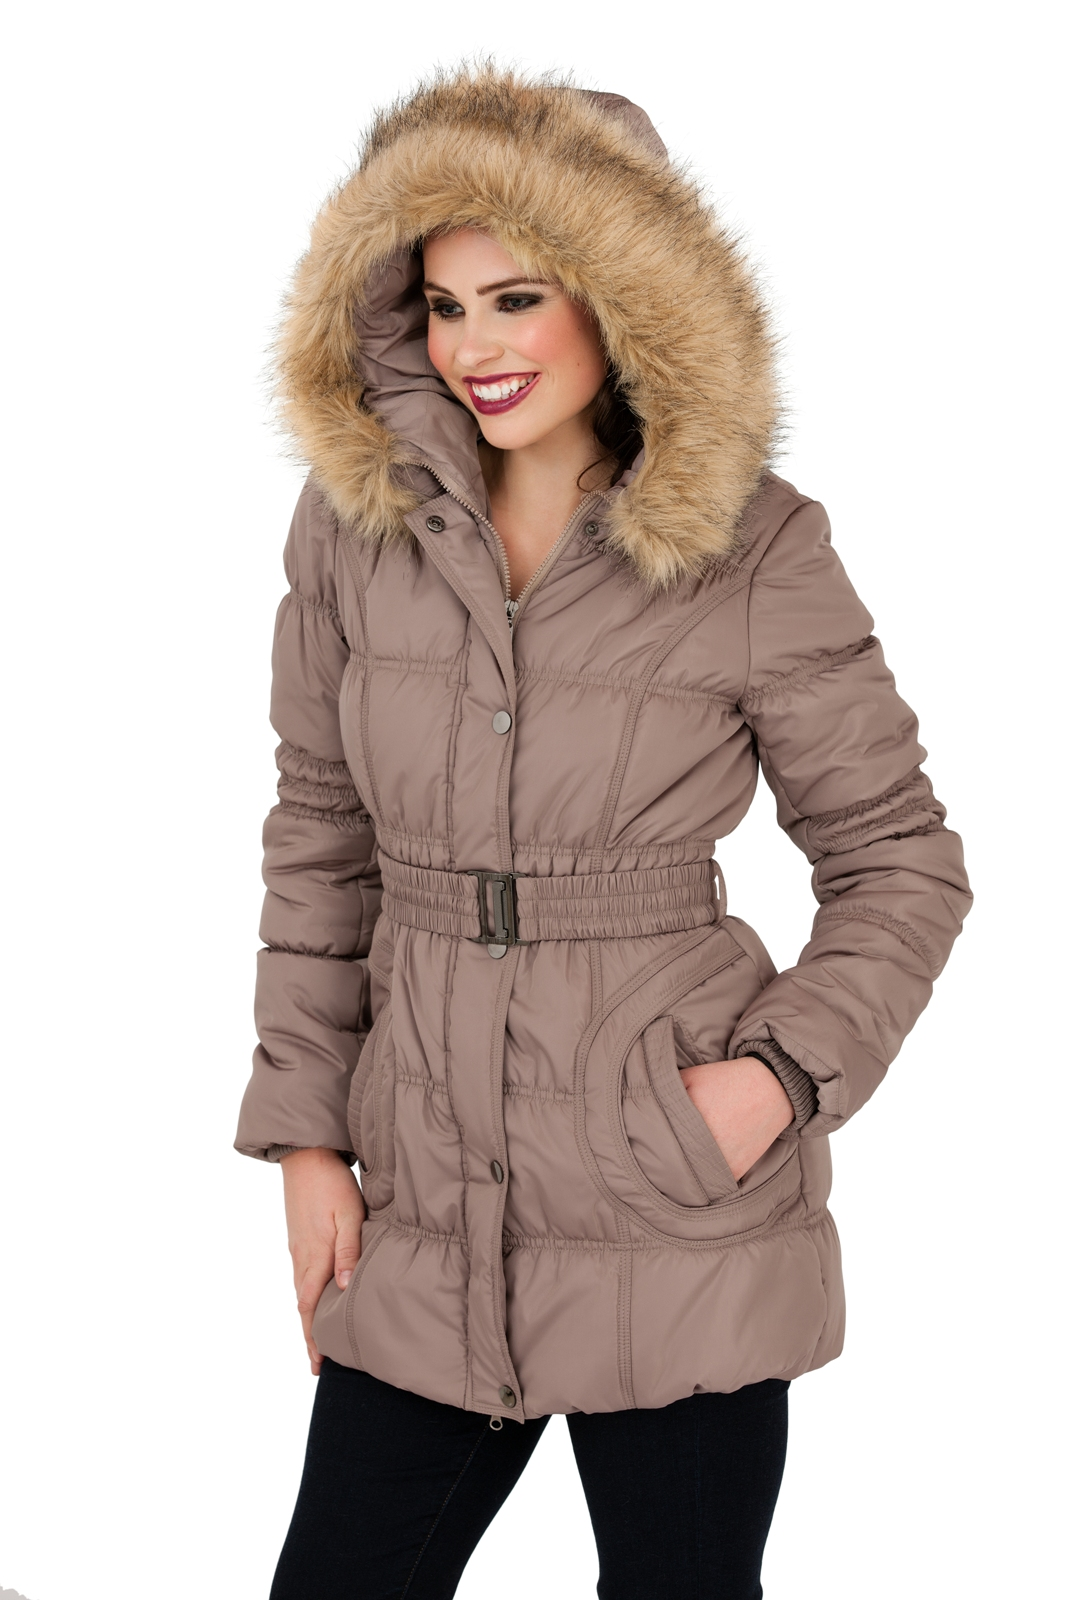 Find a great selection of women's fur coats & faux fur at europegamexma.gq Shop top brands like Trina Turk, Moose Knuckles & more. Free shipping & returns.